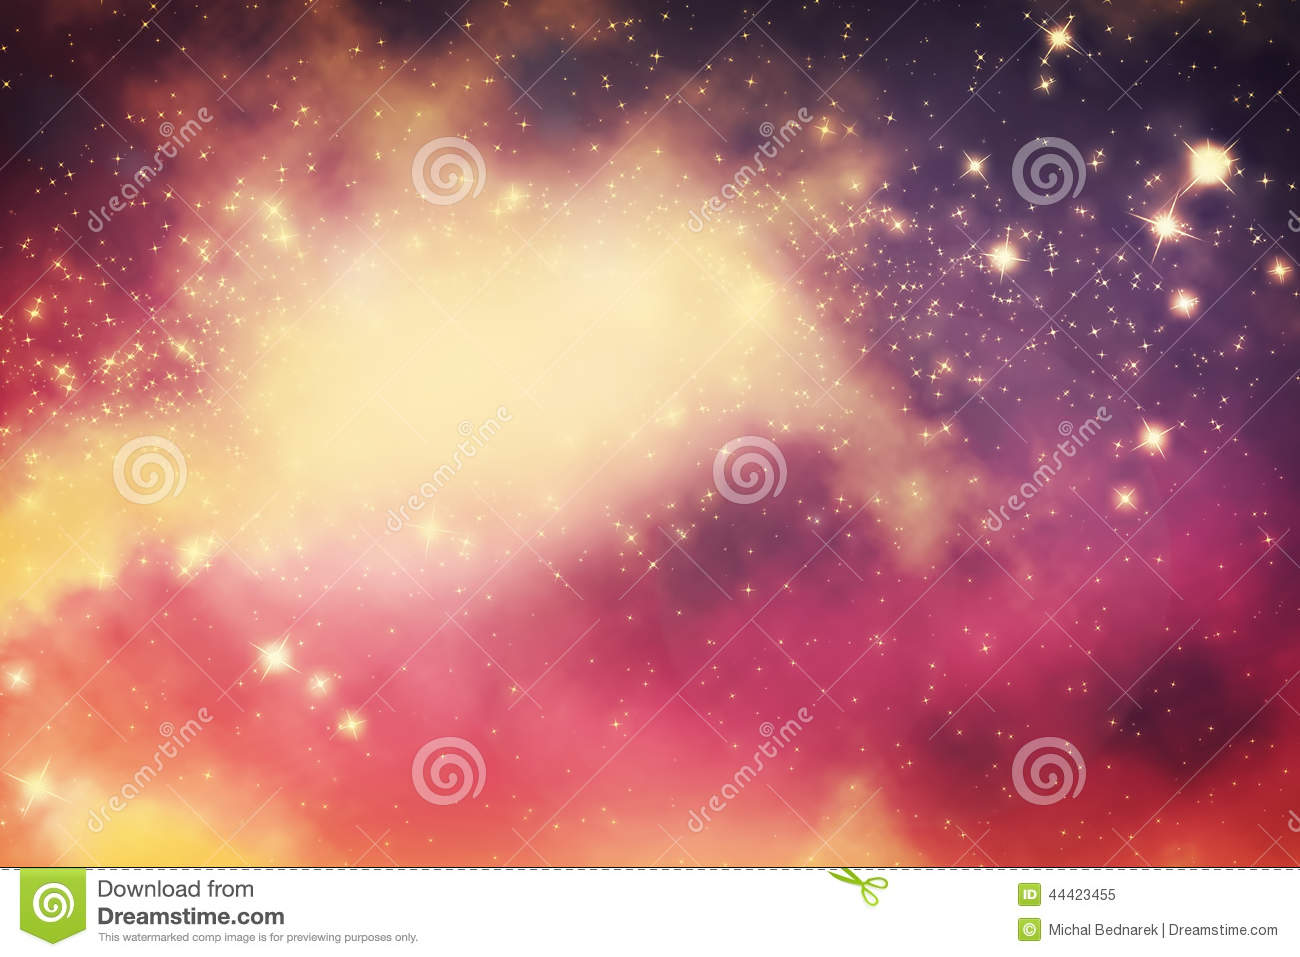 Galaxy with stars and fantasy universe space.